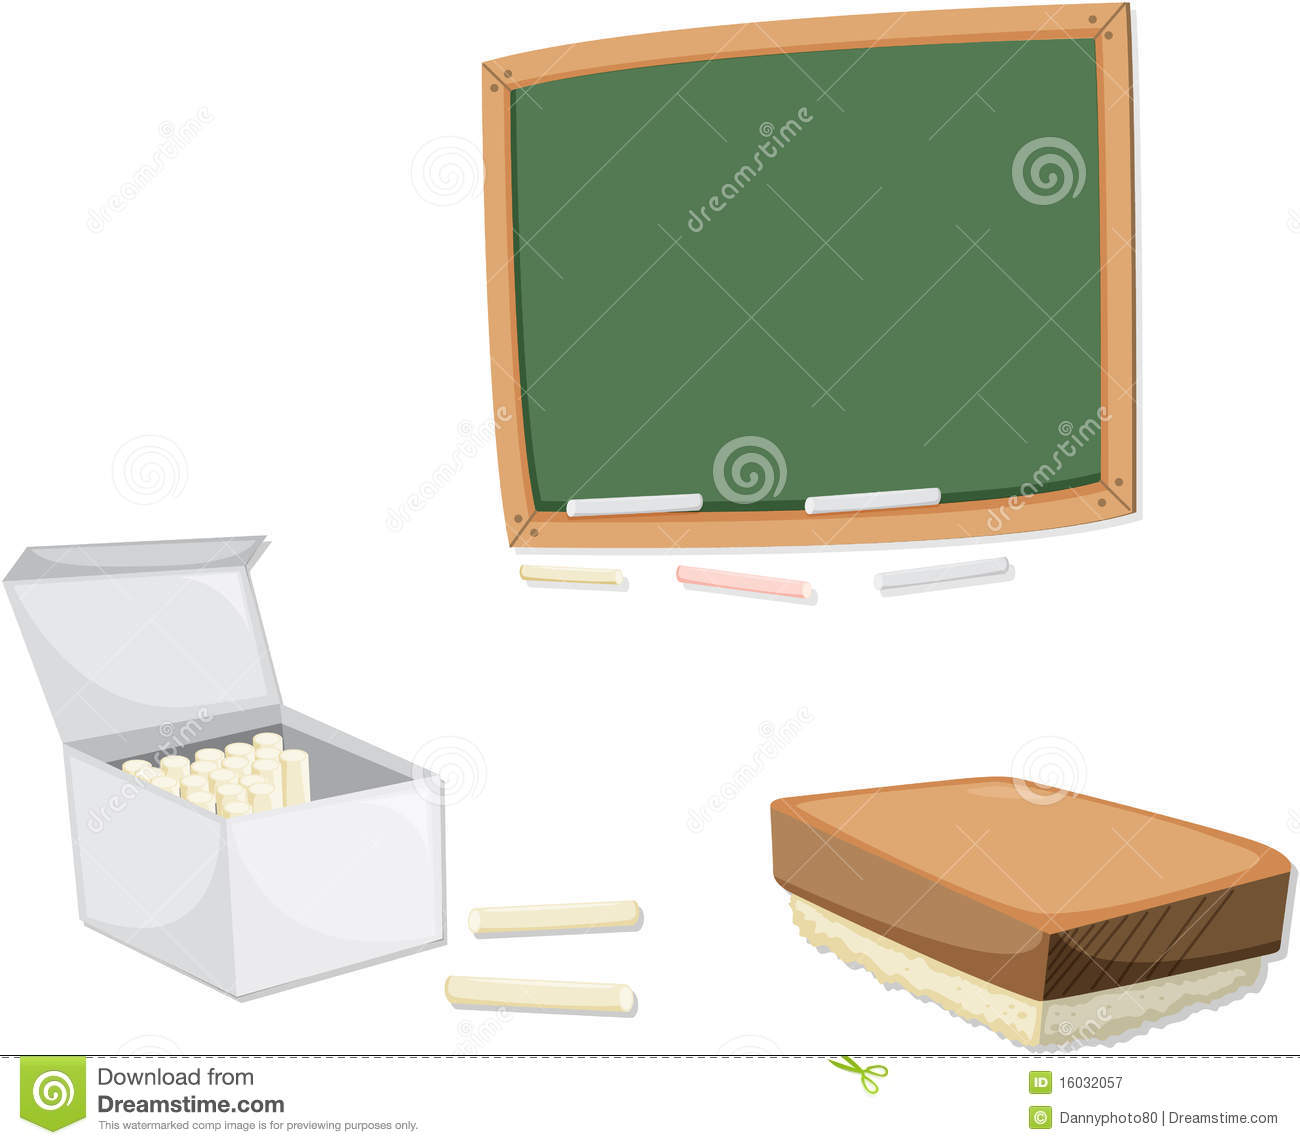 306878 in addition Stock Vector Border Design With Students And Stationaries Illustration further P 28086 Mag ic Whiteboard Eraser Tiger also Product Spotlight Smart Board 6065 besides Expo Dry Erase Eraser W30290. on board eraser